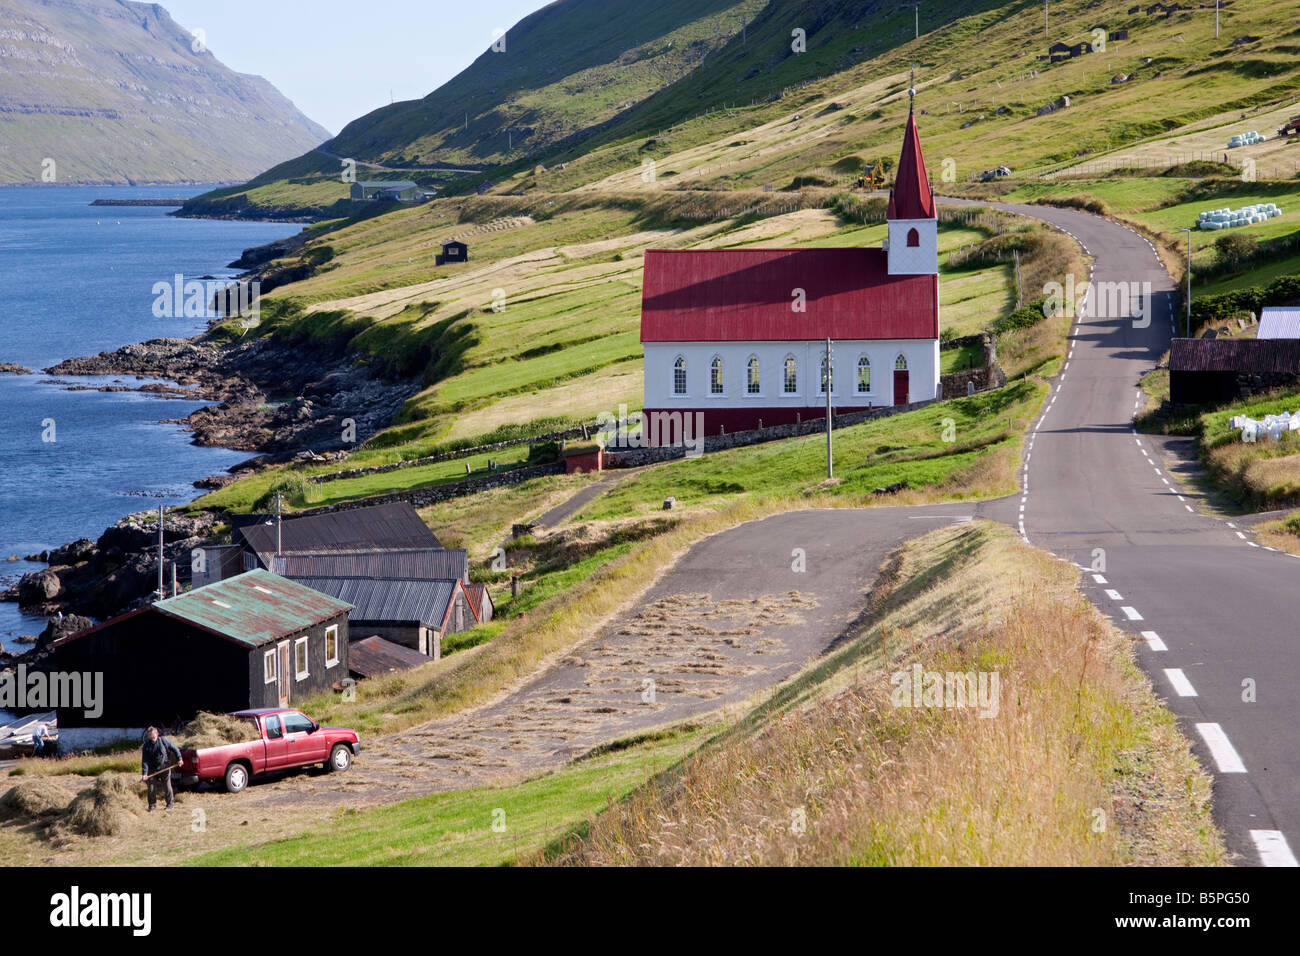 Hùsar village, Kalsoy Island. Faroe Islands - Stock Image